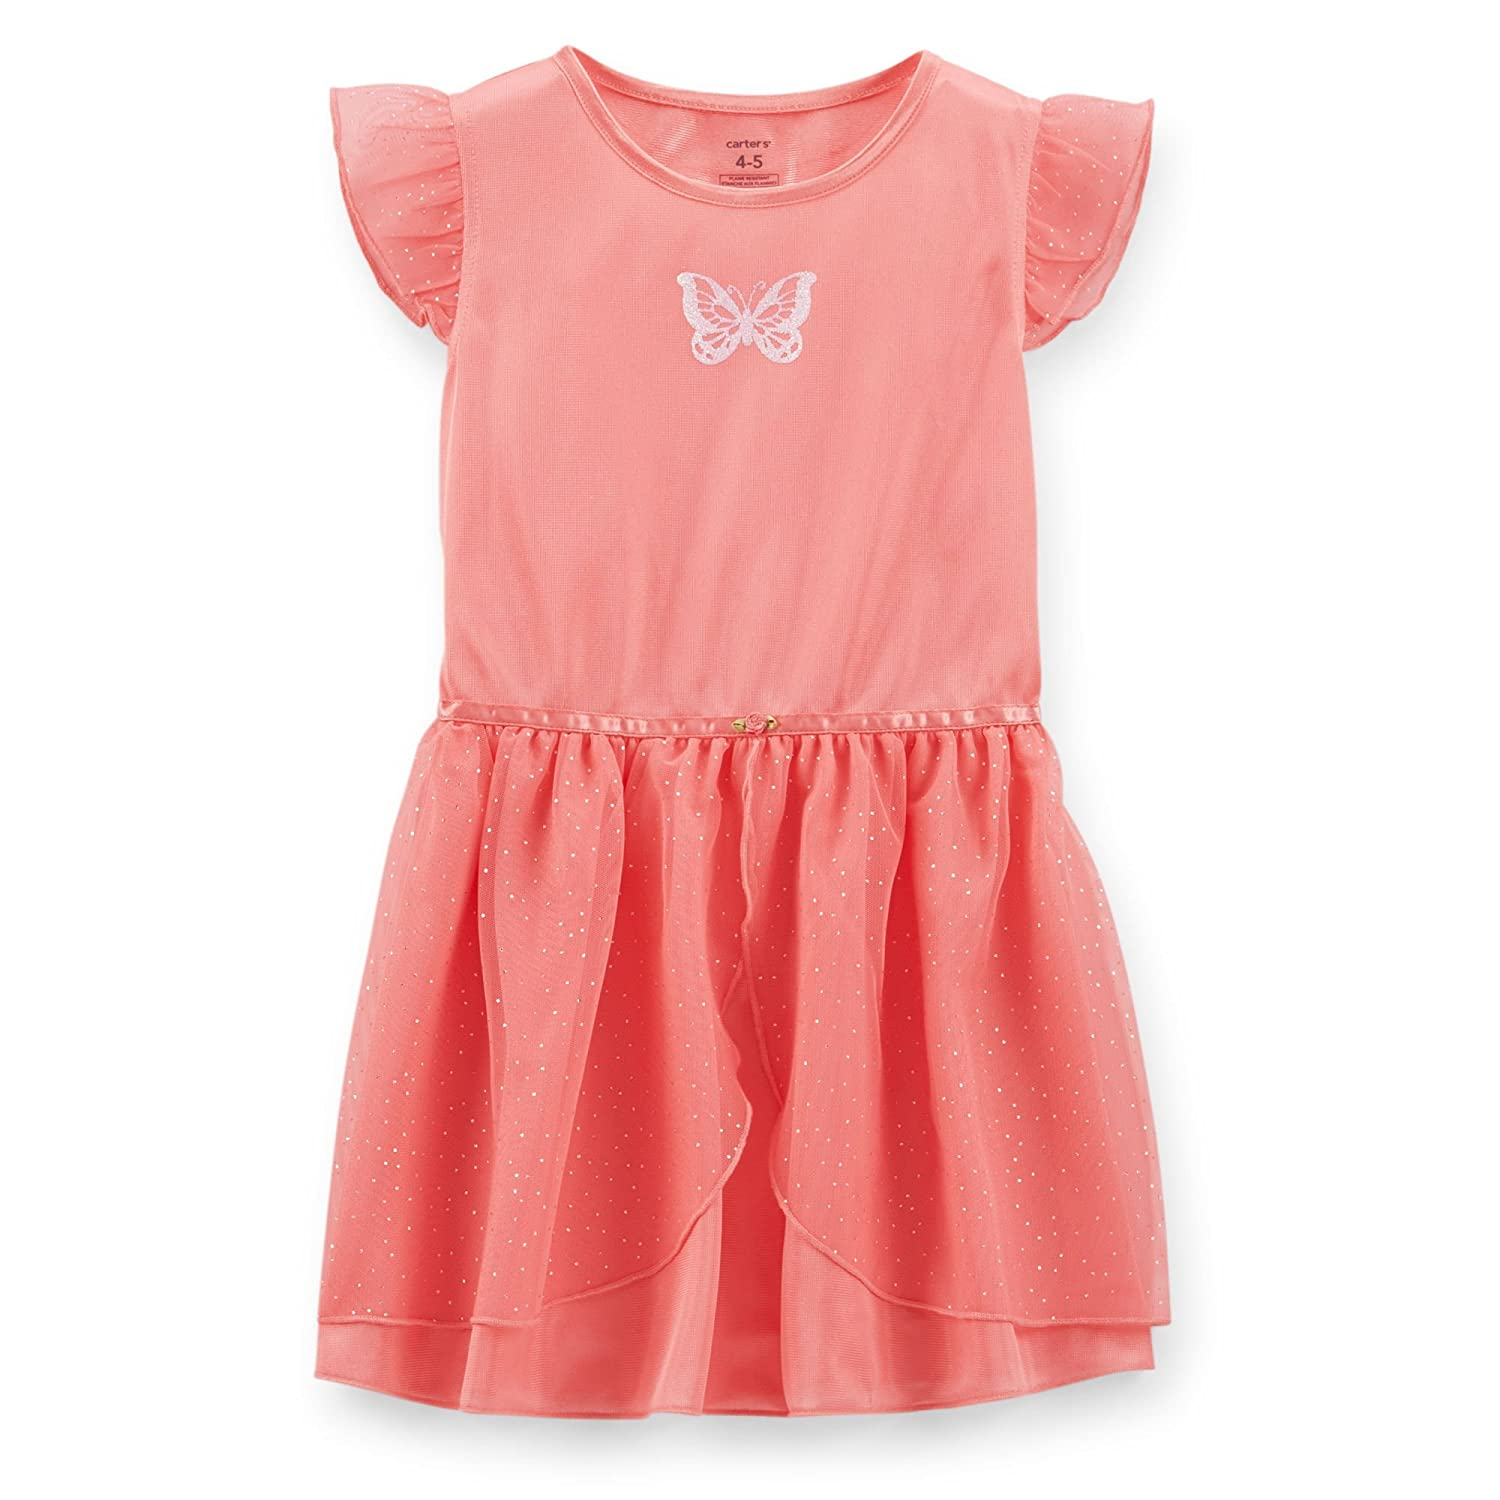 16e5c2620f49 Amazon.com  Carter s Little Girls  Princess Tulle Nightgown - Pink ...